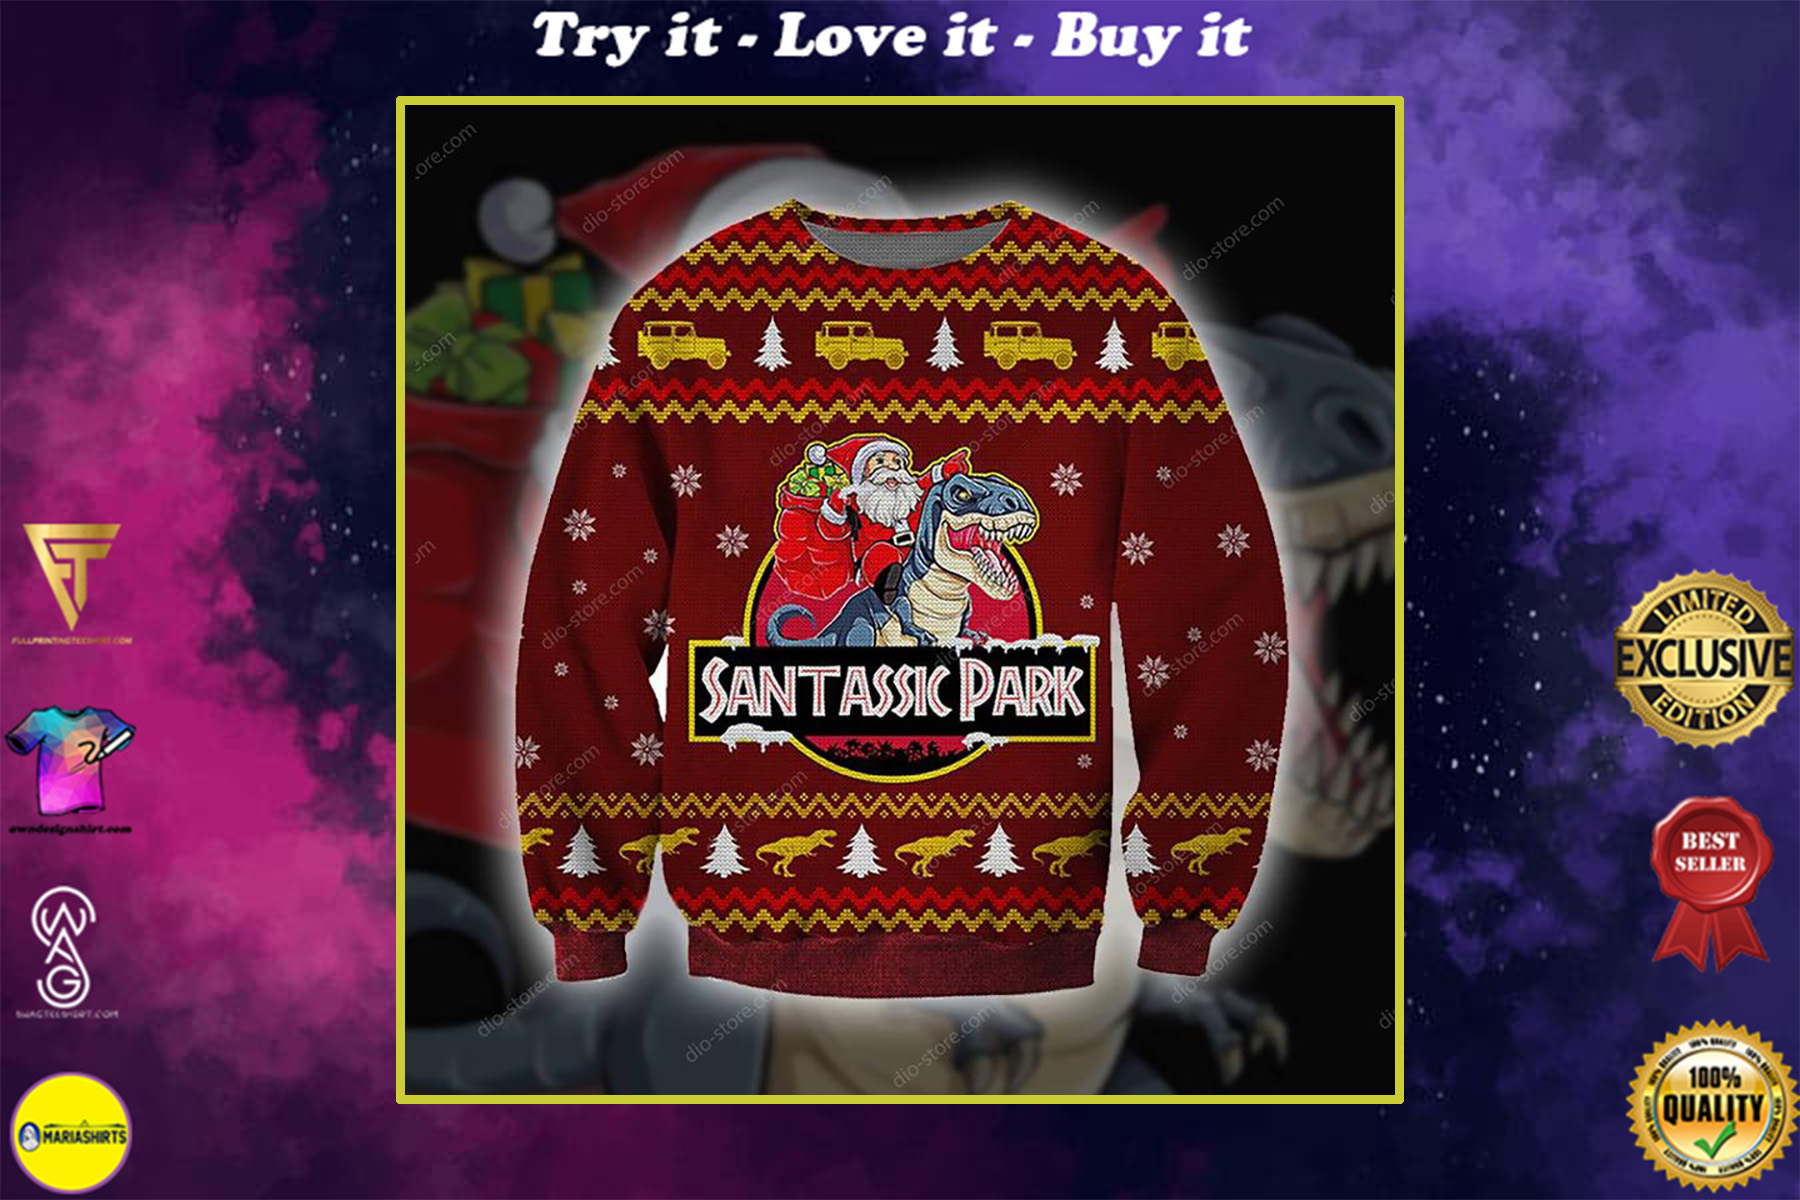 santassic park all over printed ugly christmas sweater